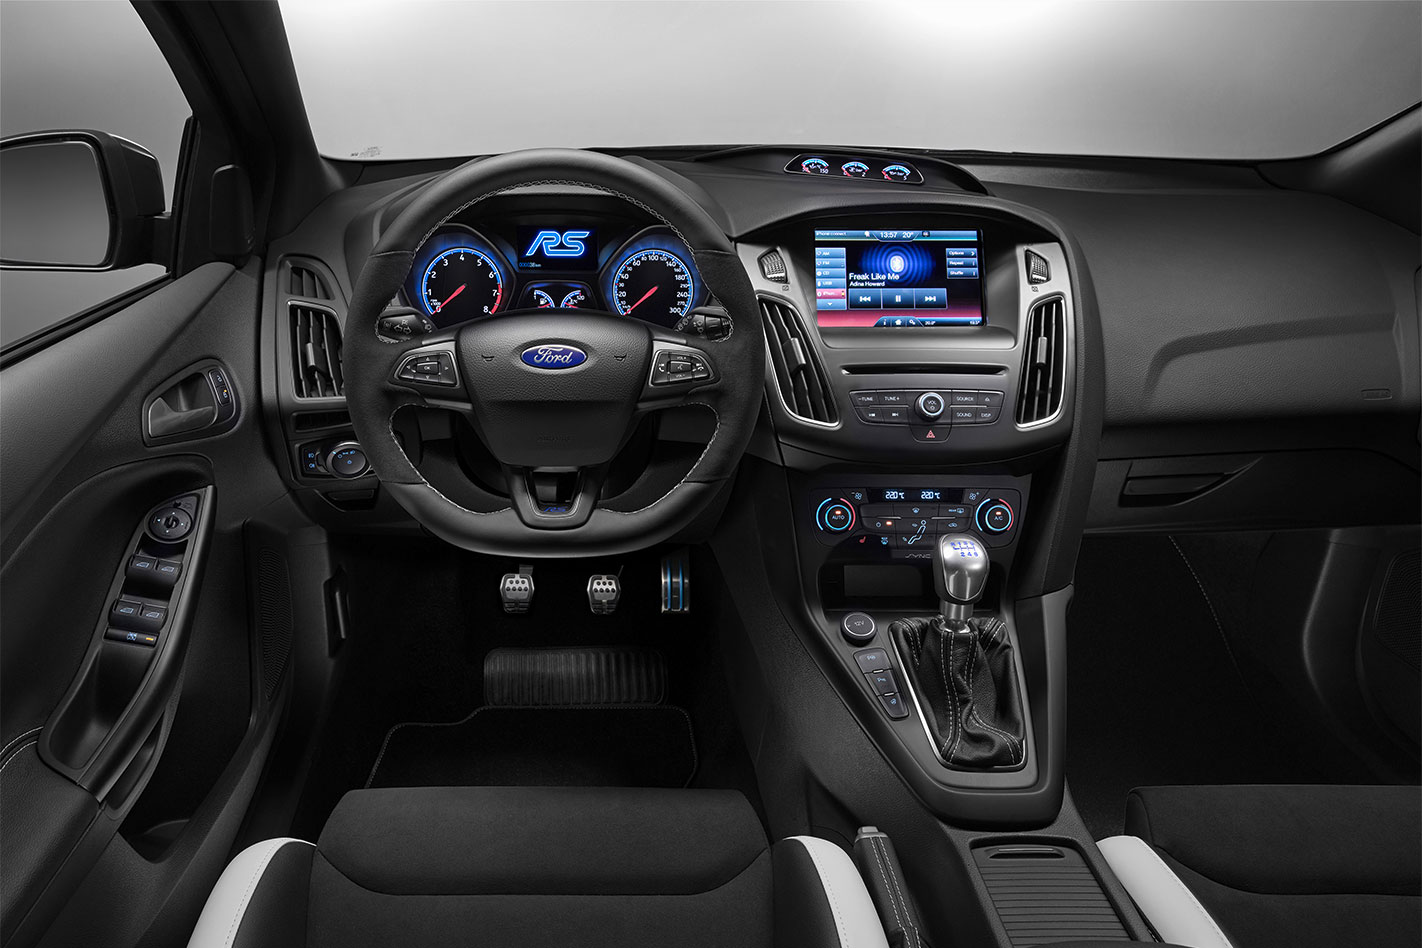 http://www.focusrs.org/forum/attachments/10185d1464636935-interior-upgrades-ford-focus-rs-interior.jpg